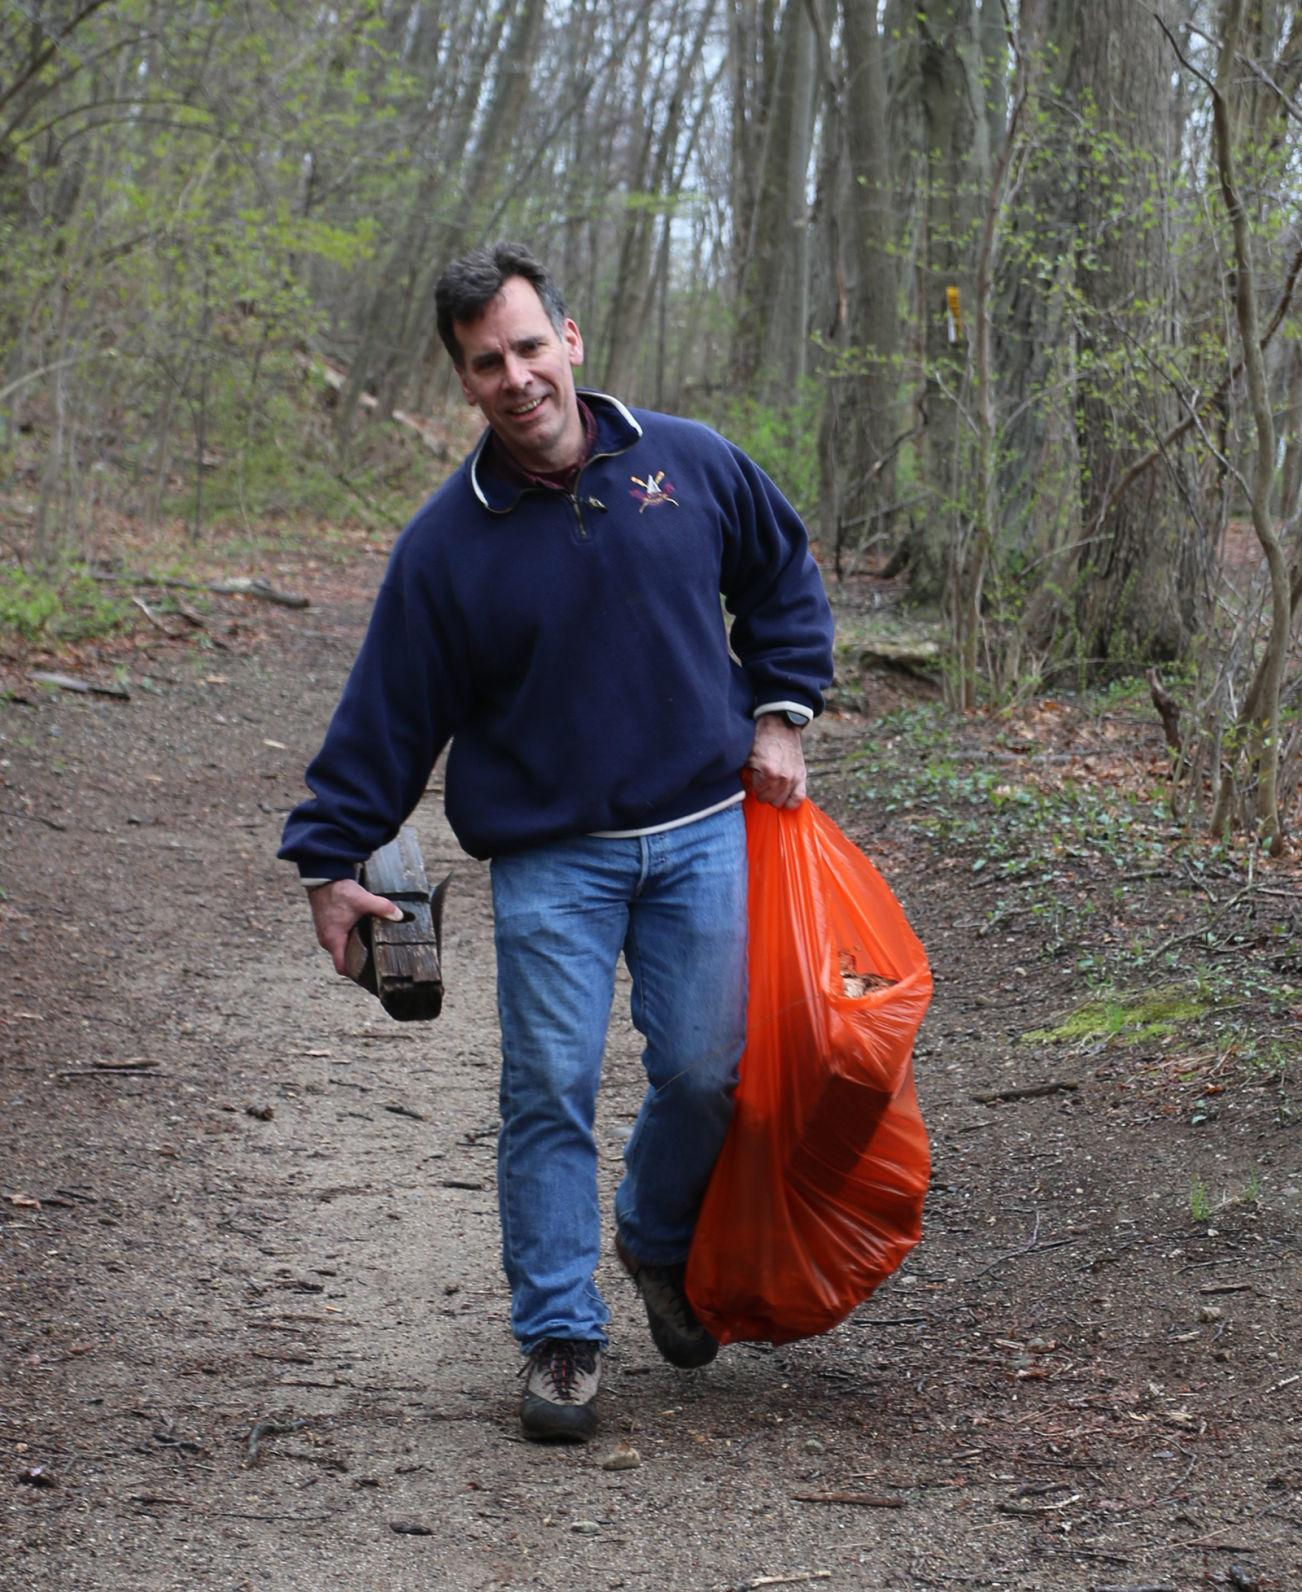 CLEANING UP THE TRAIL